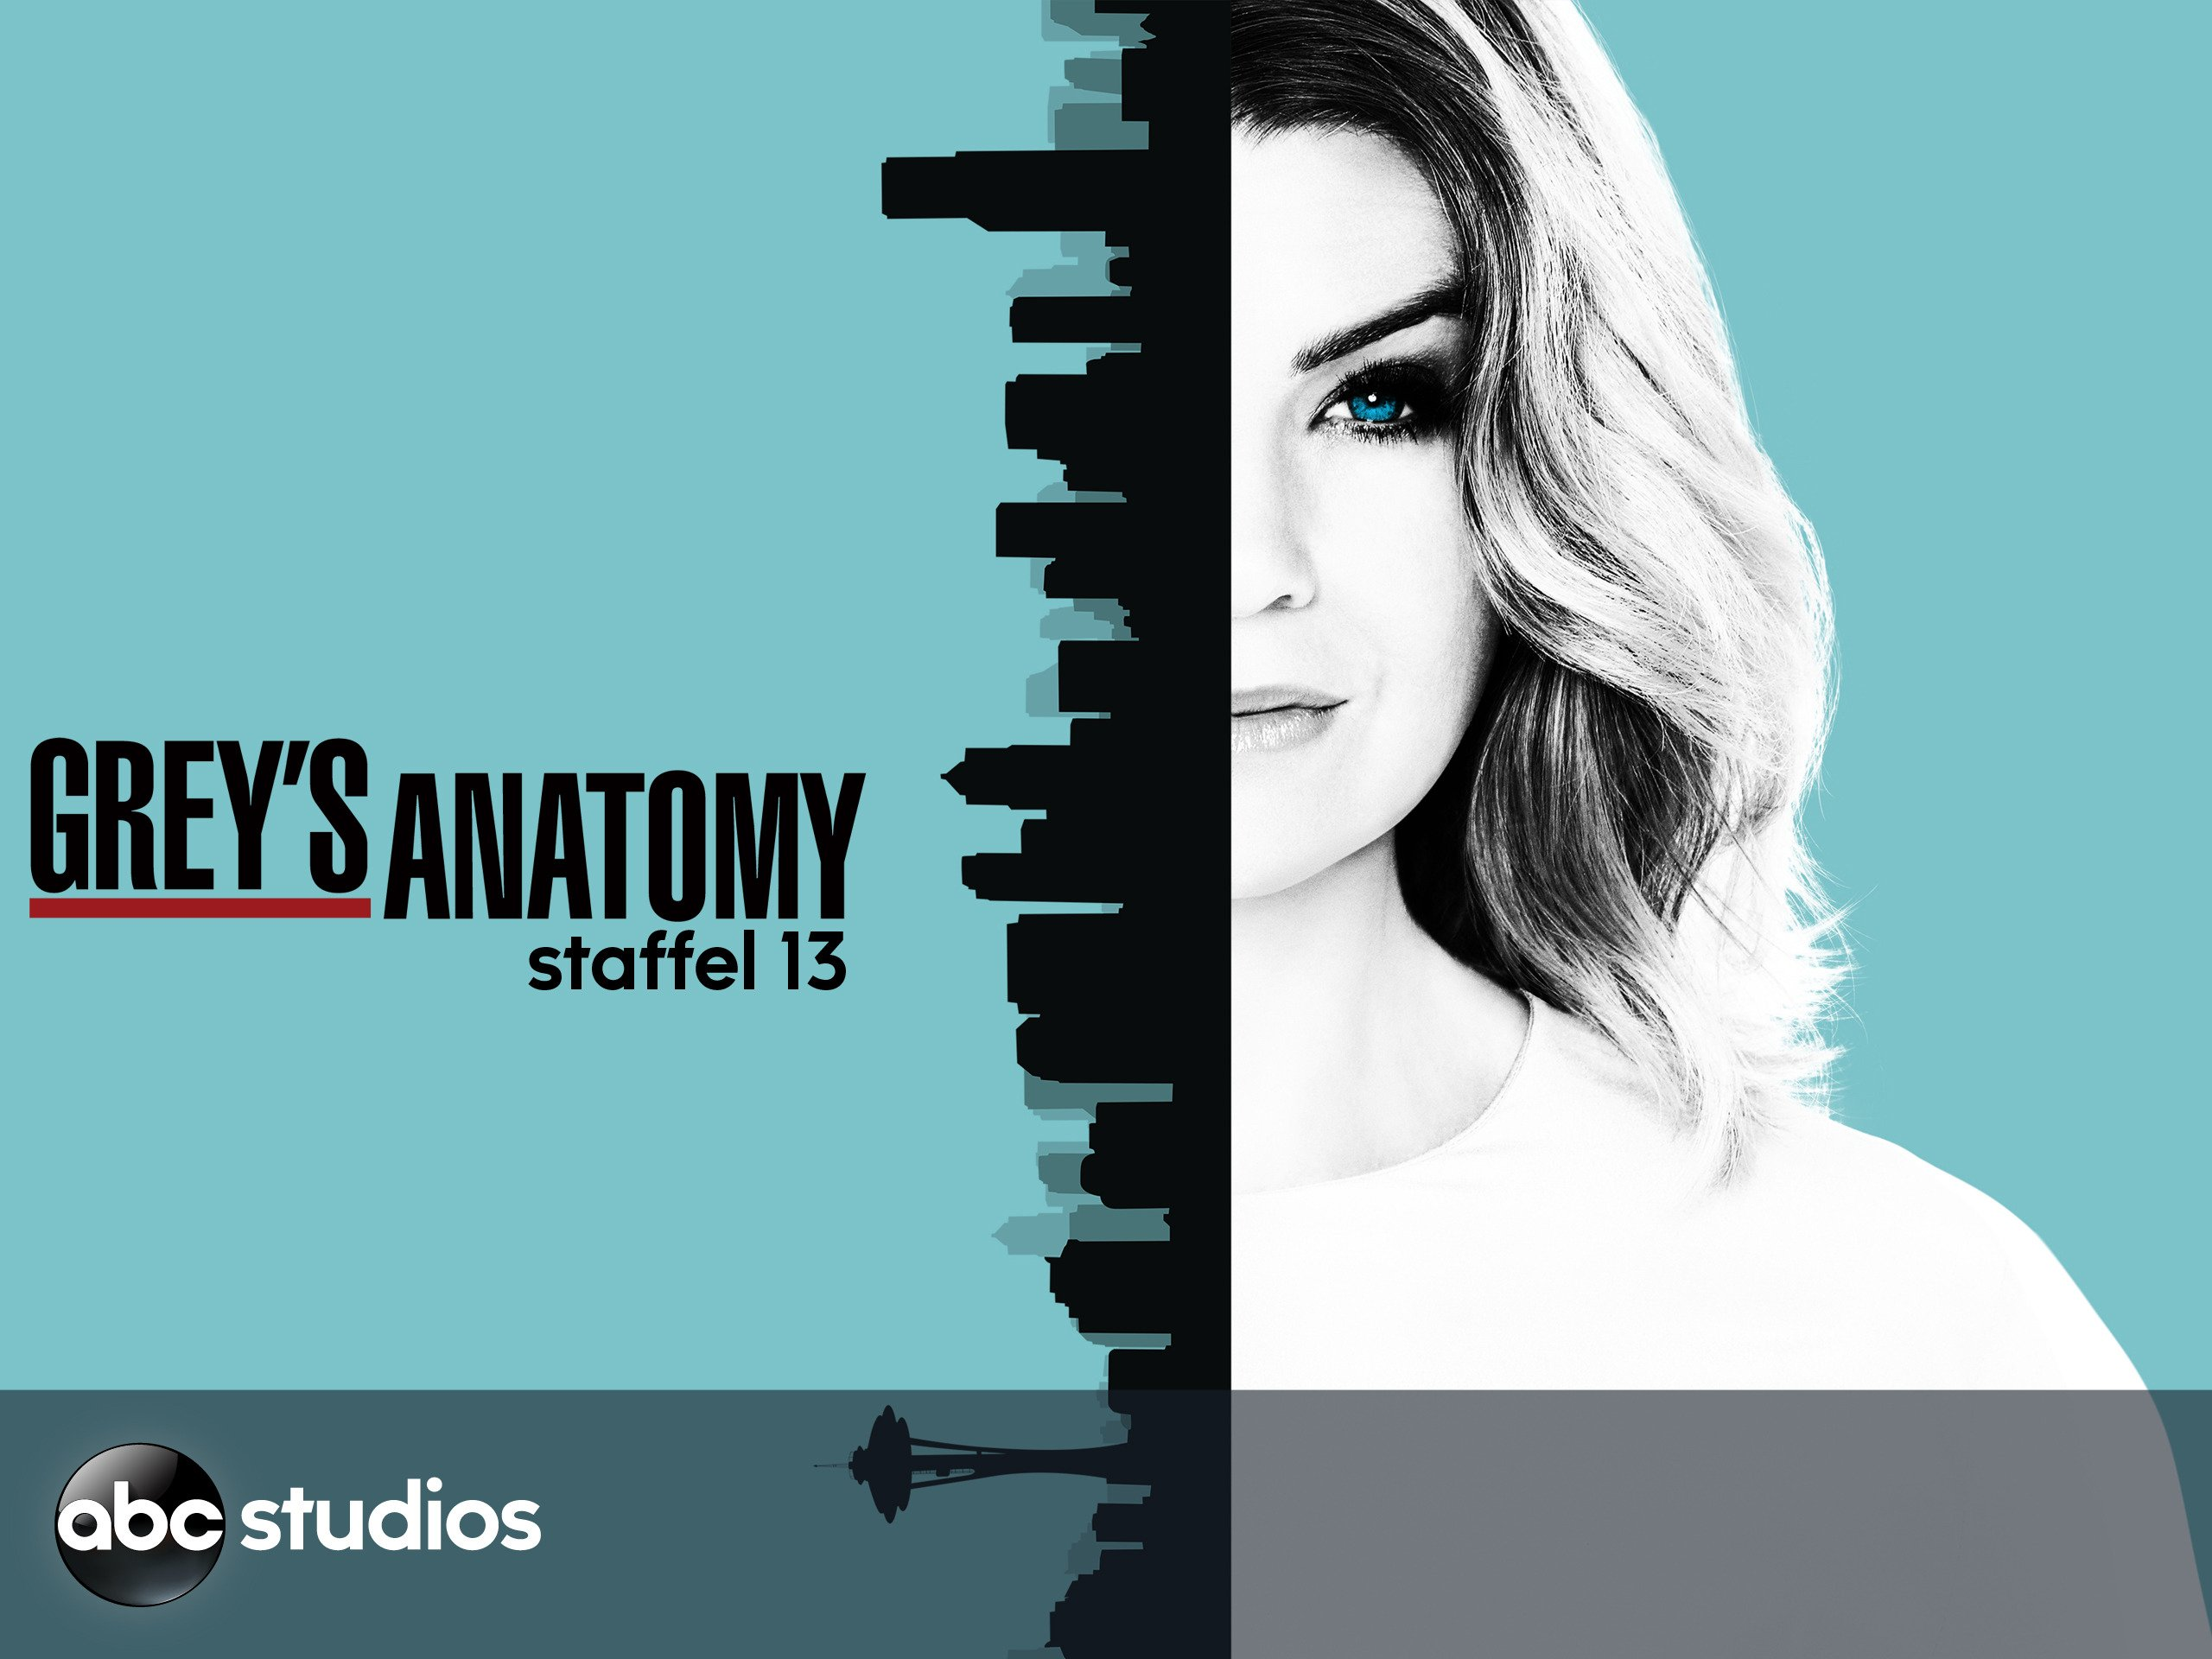 Amazon.de: Grey\'s Anatomy - Staffel 13 [dt./OV] ansehen | Prime Video